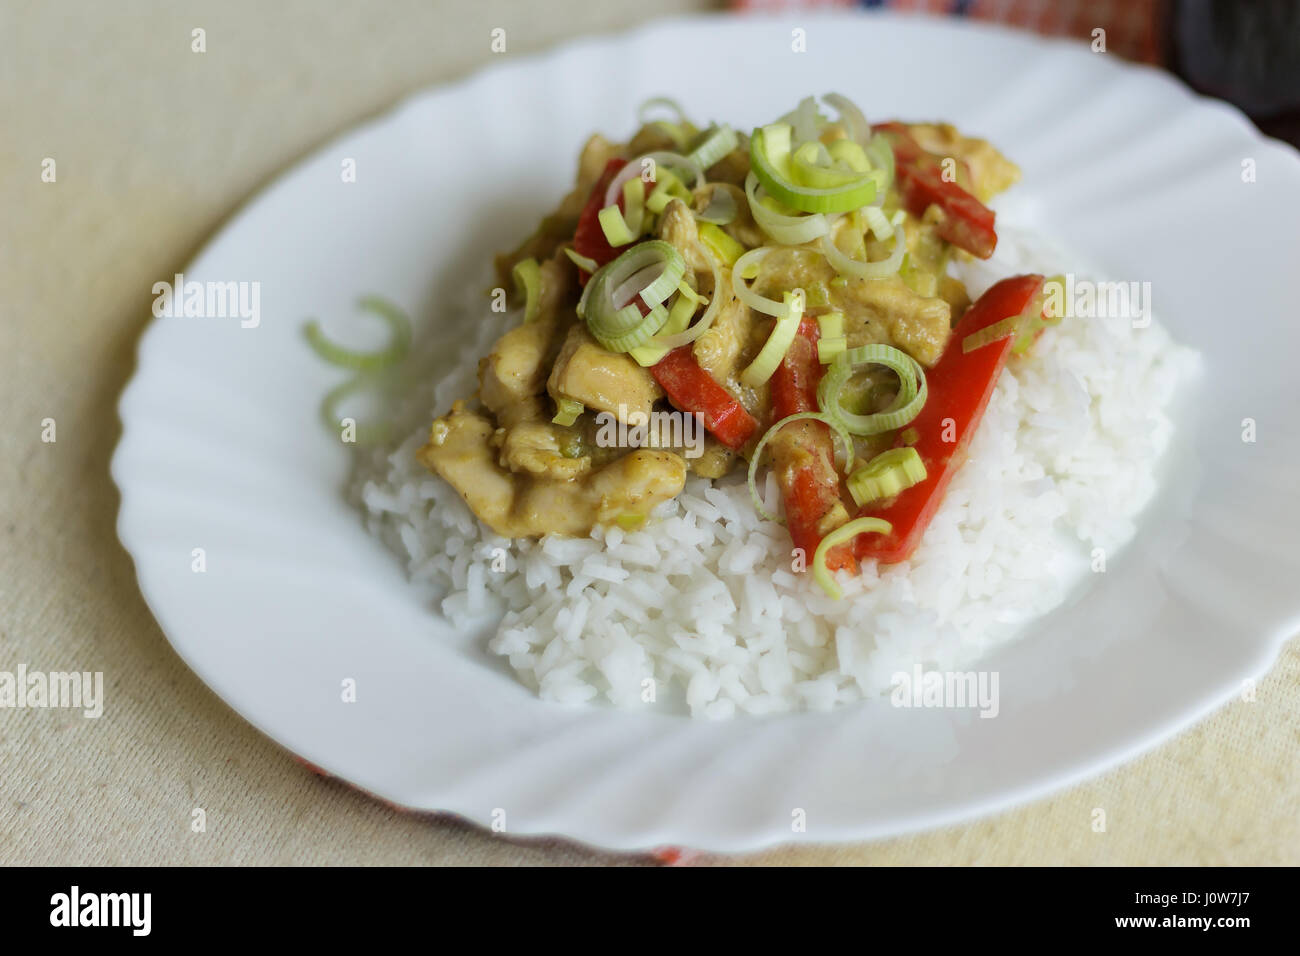 Vietnamese food - roast chicken meat with vegetables and rice on a white plate - Stock Image